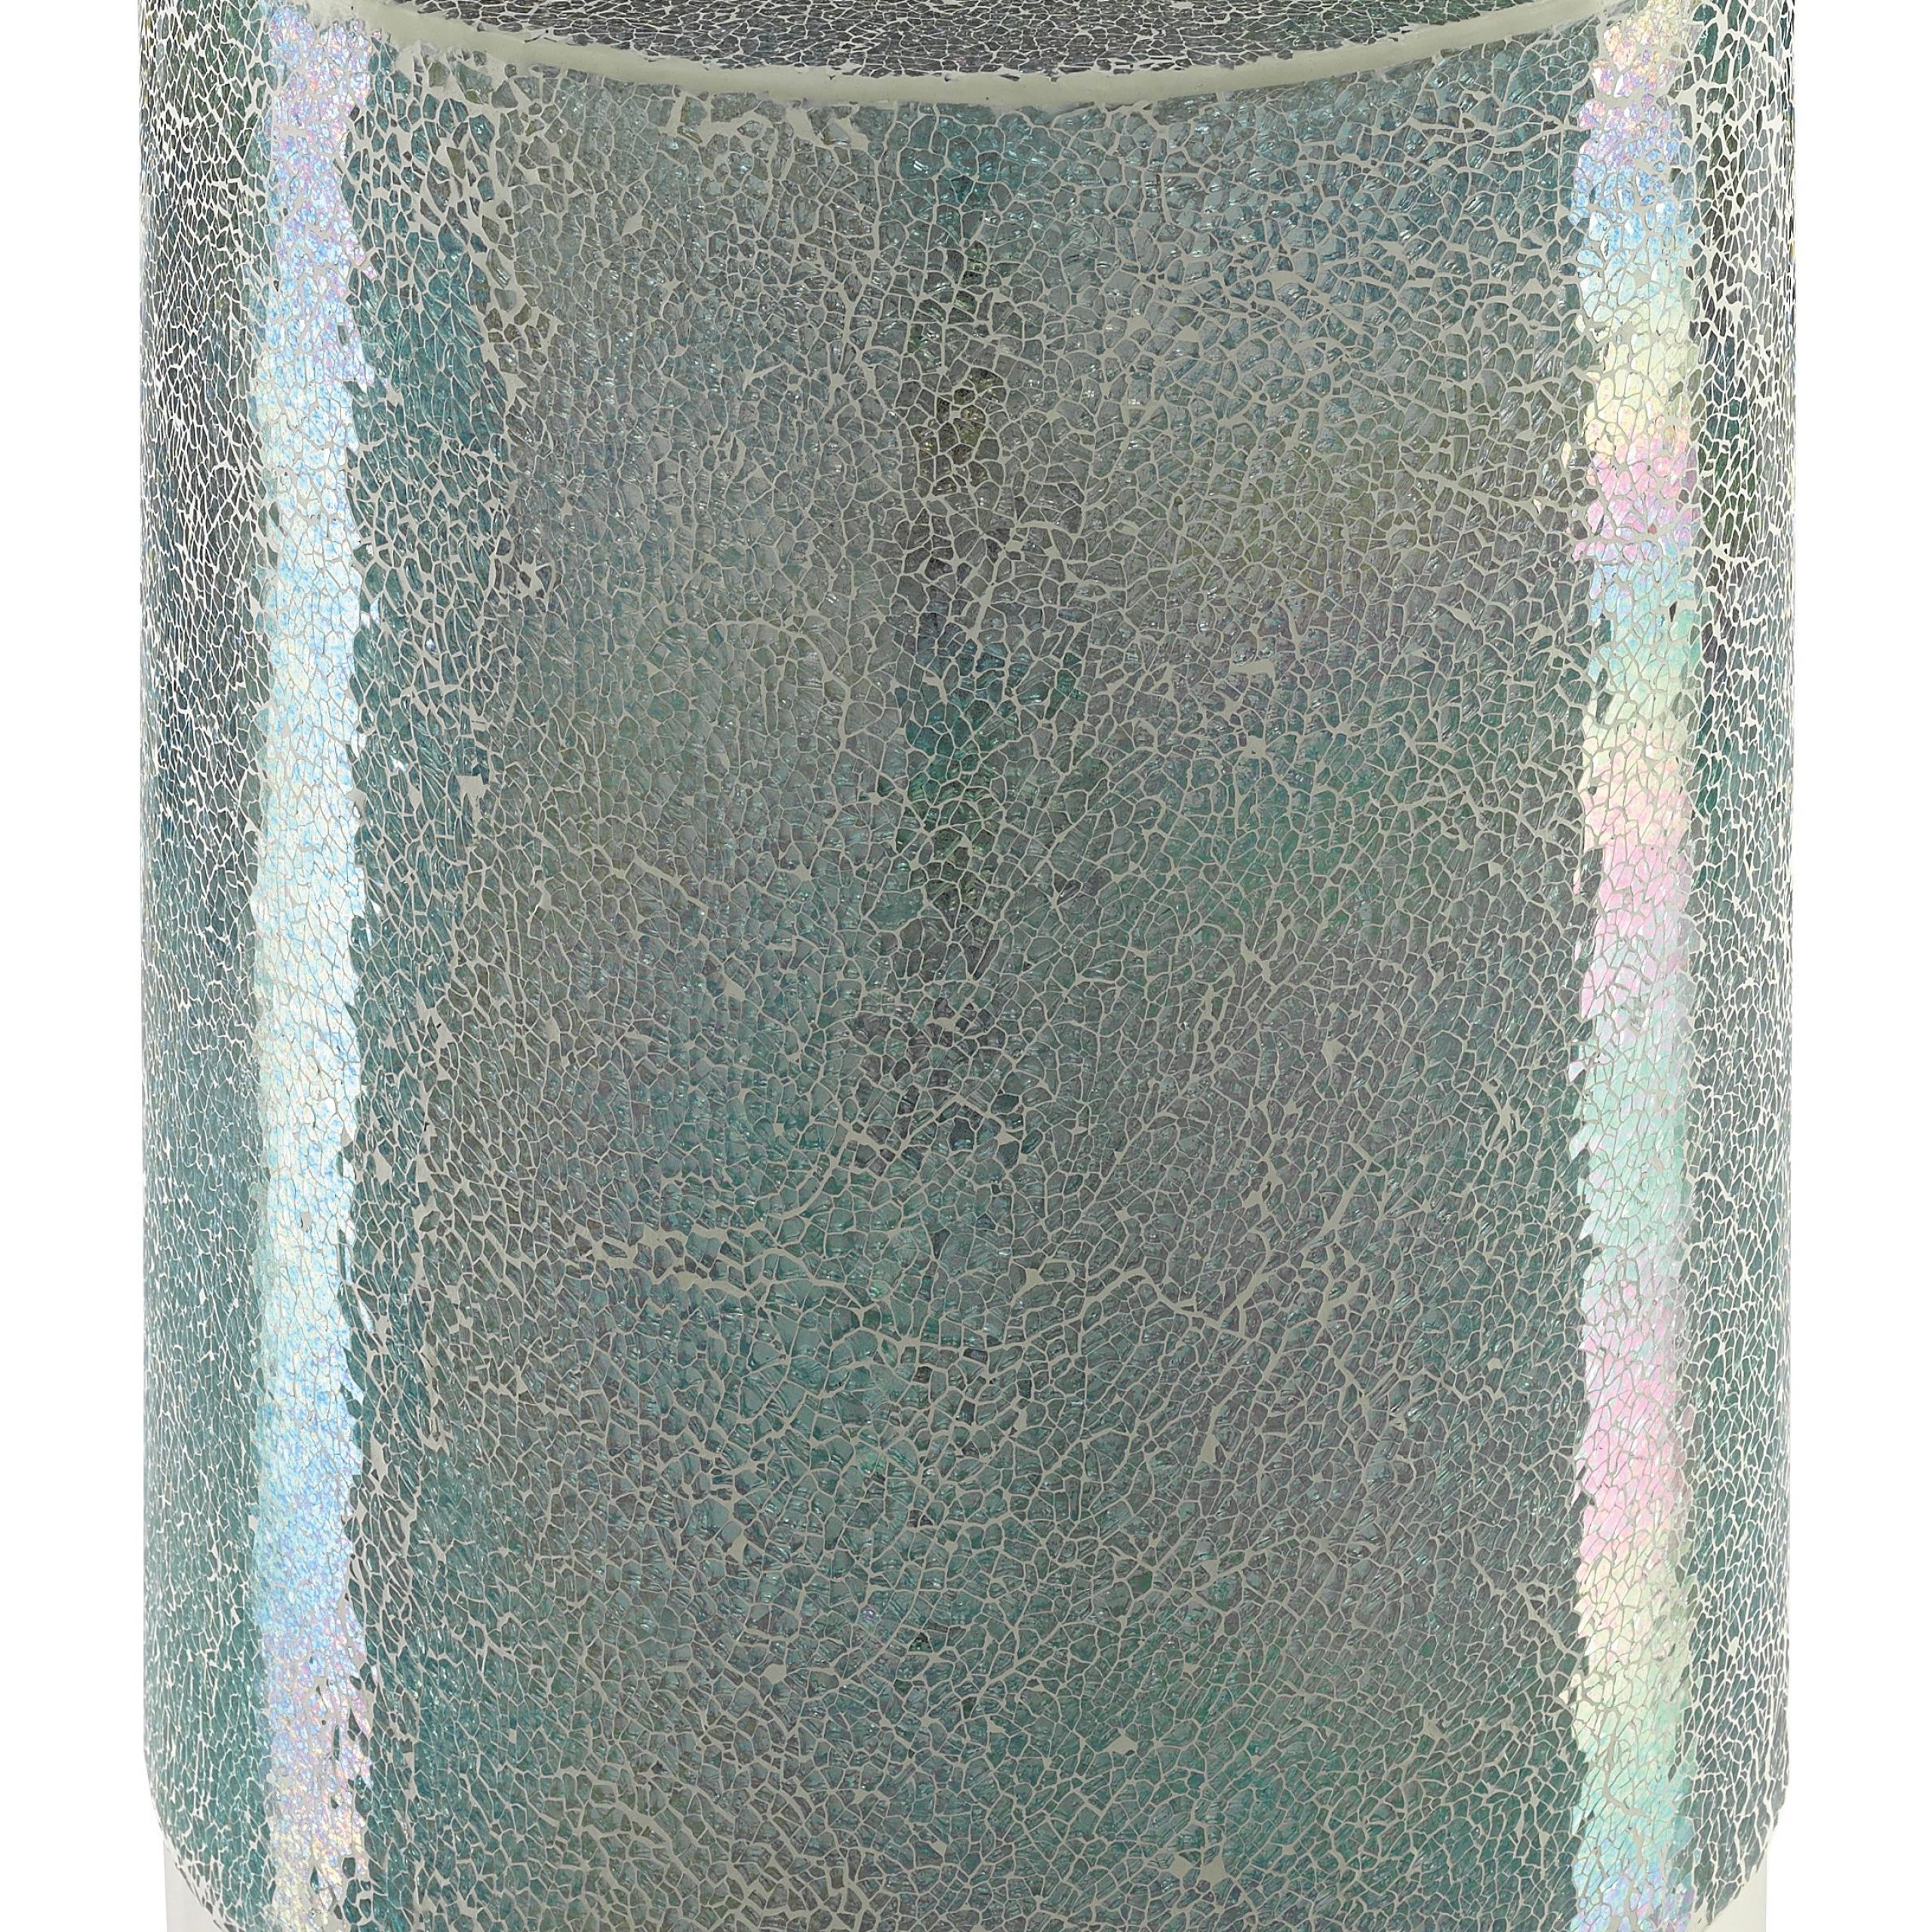 Mermaid Glass Table/Stool | Sku: 4000 0054 – Vozeli Within Horsforth Garden Stools (View 25 of 25)